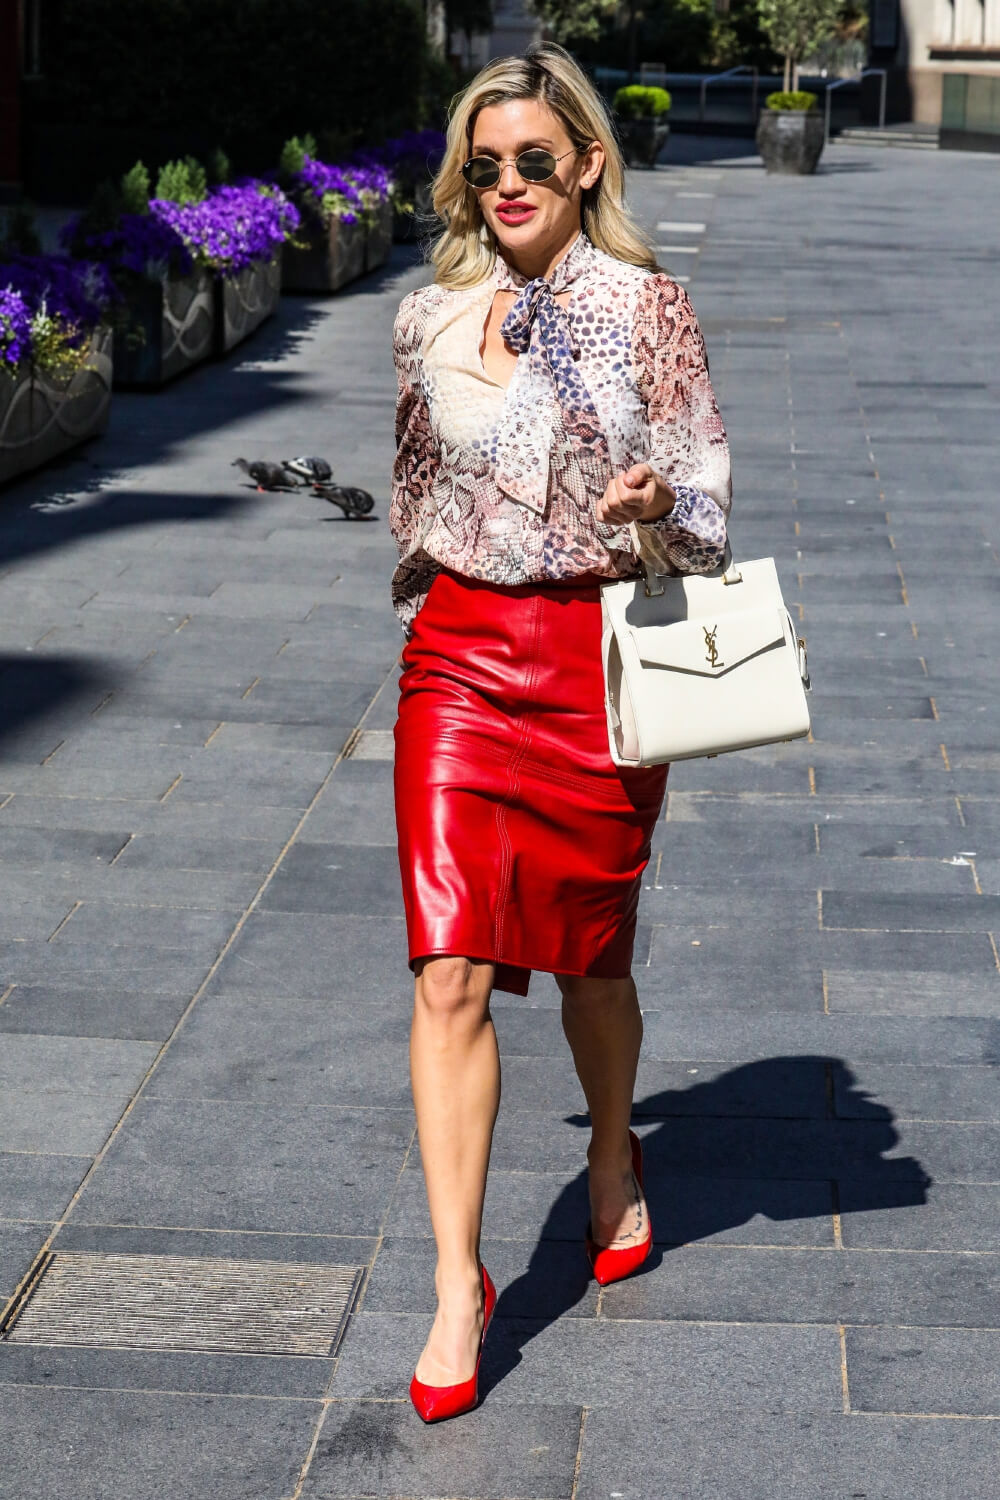 Ashley Roberts looks chic in pencil skirt and print top while leaving the Global studios